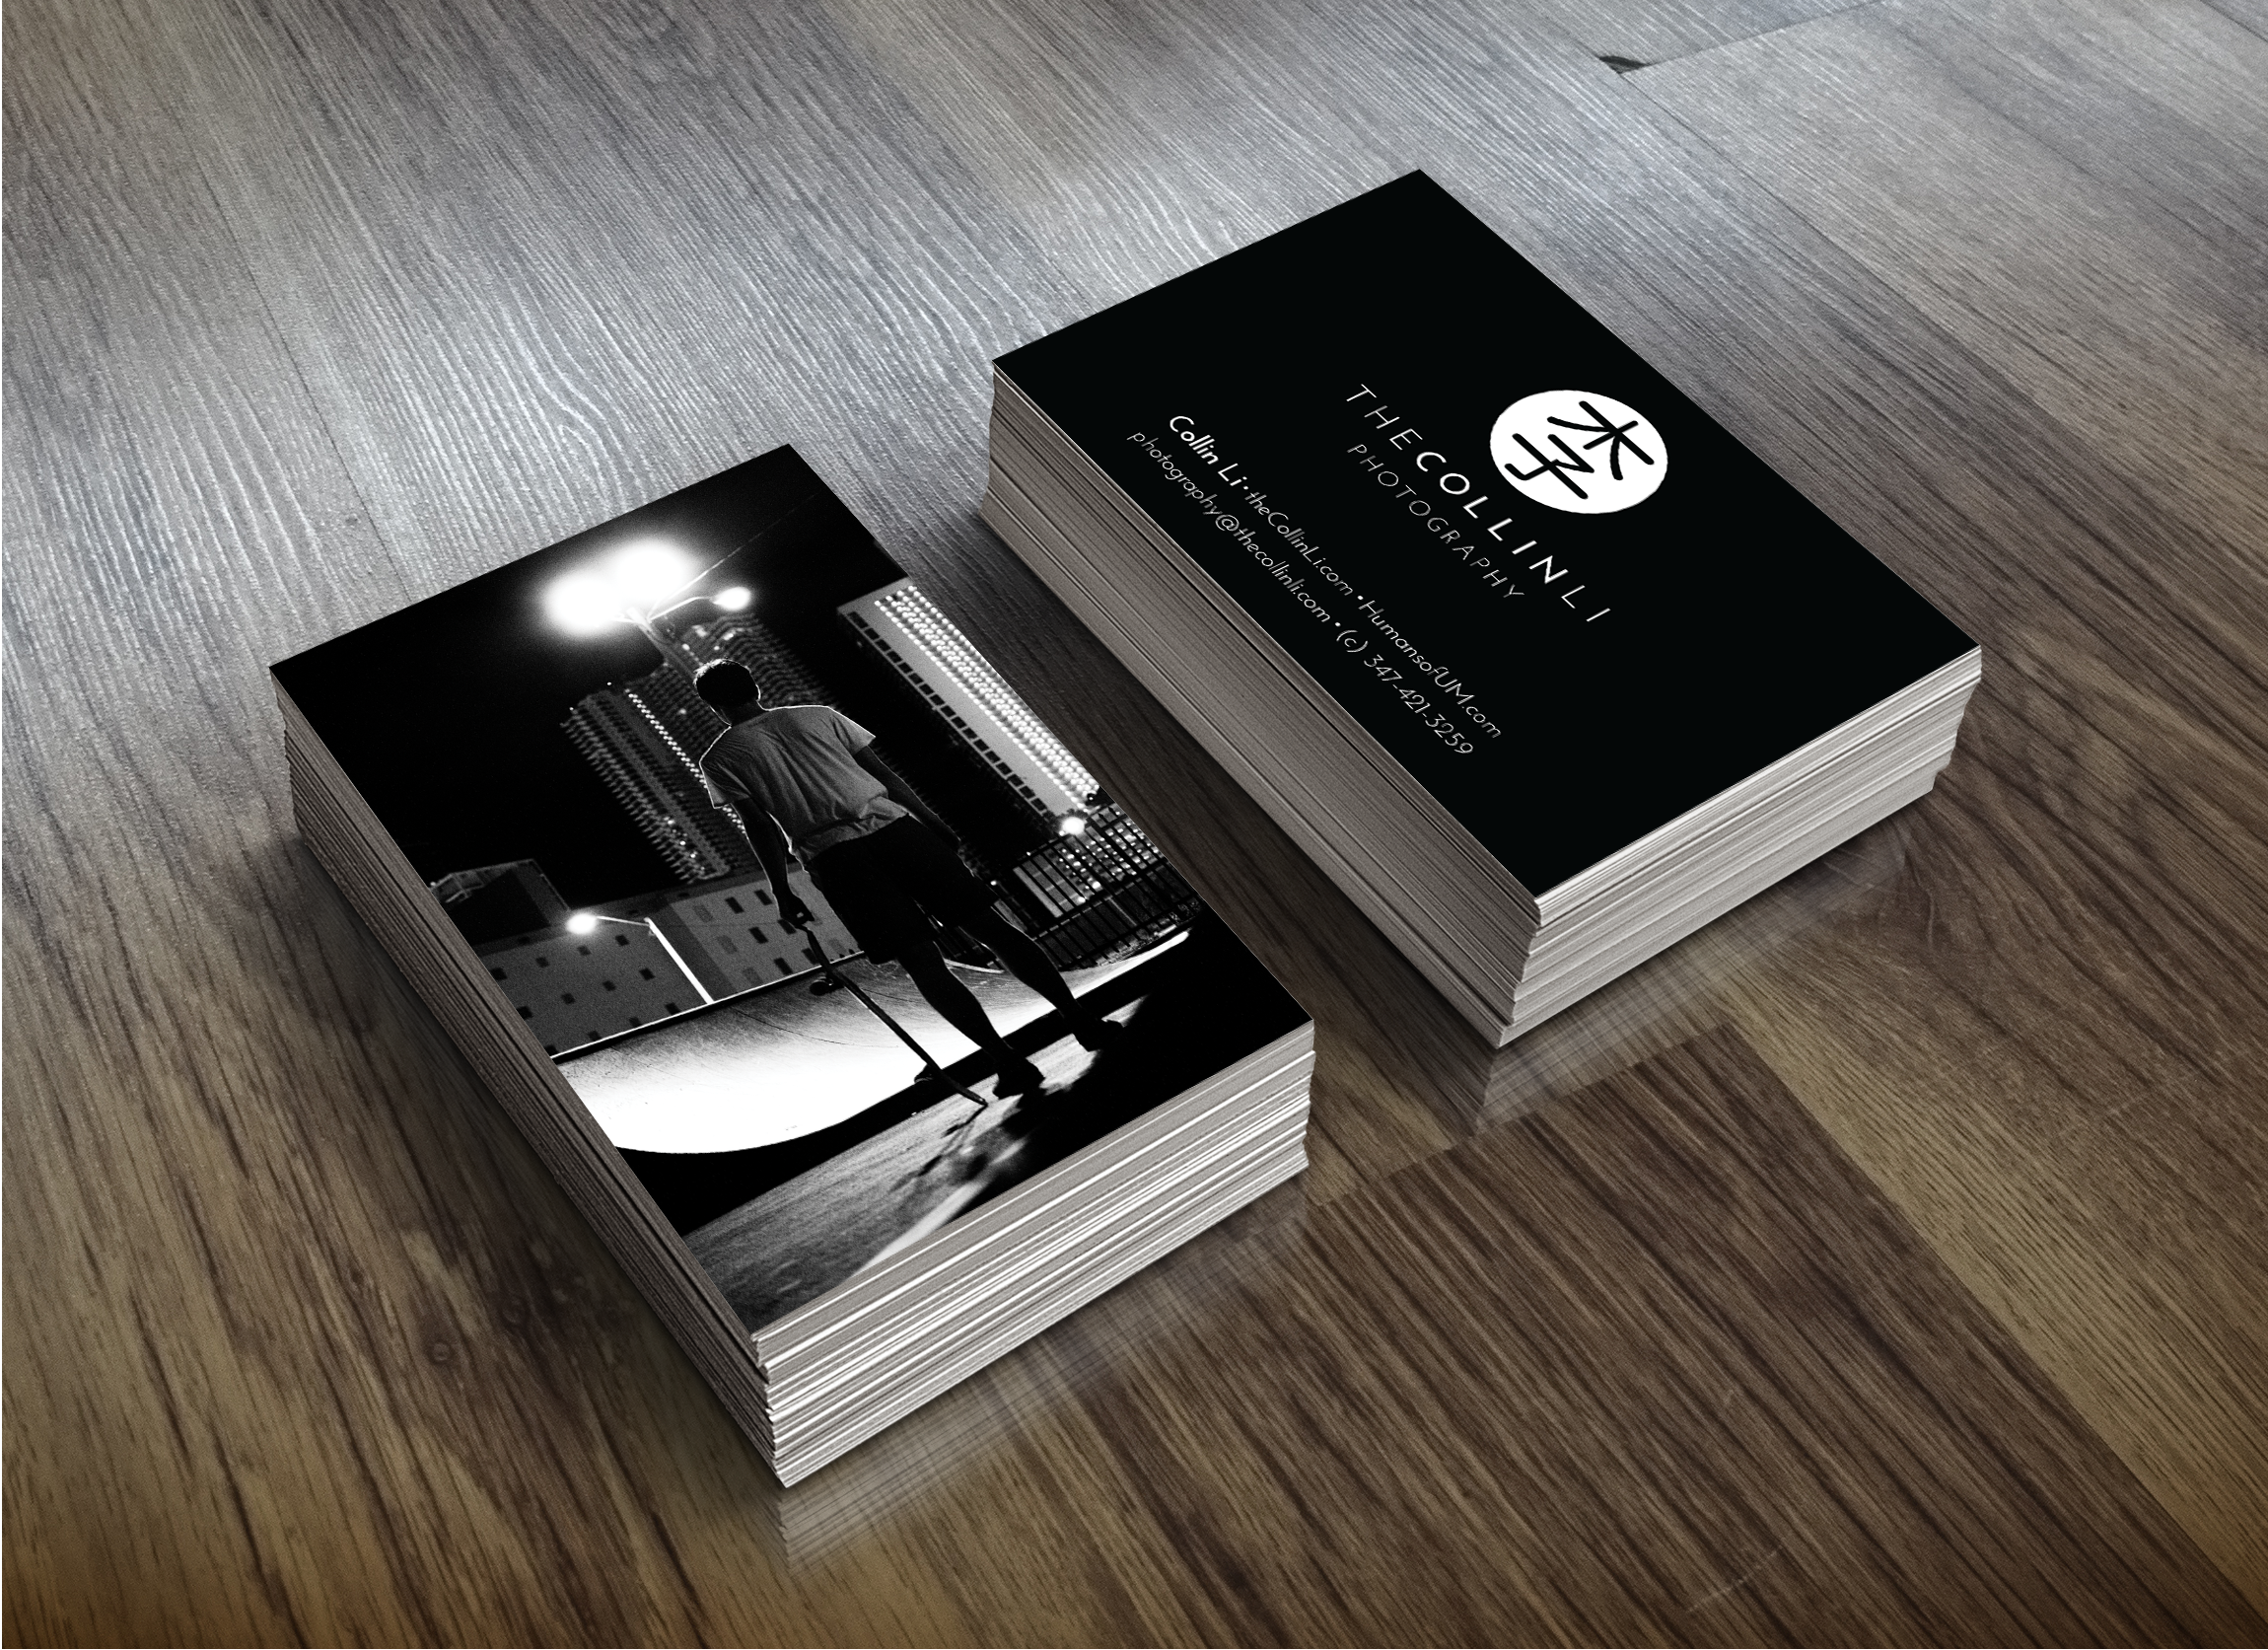 Street Photography Business Cards Images - Card Design And Card Template